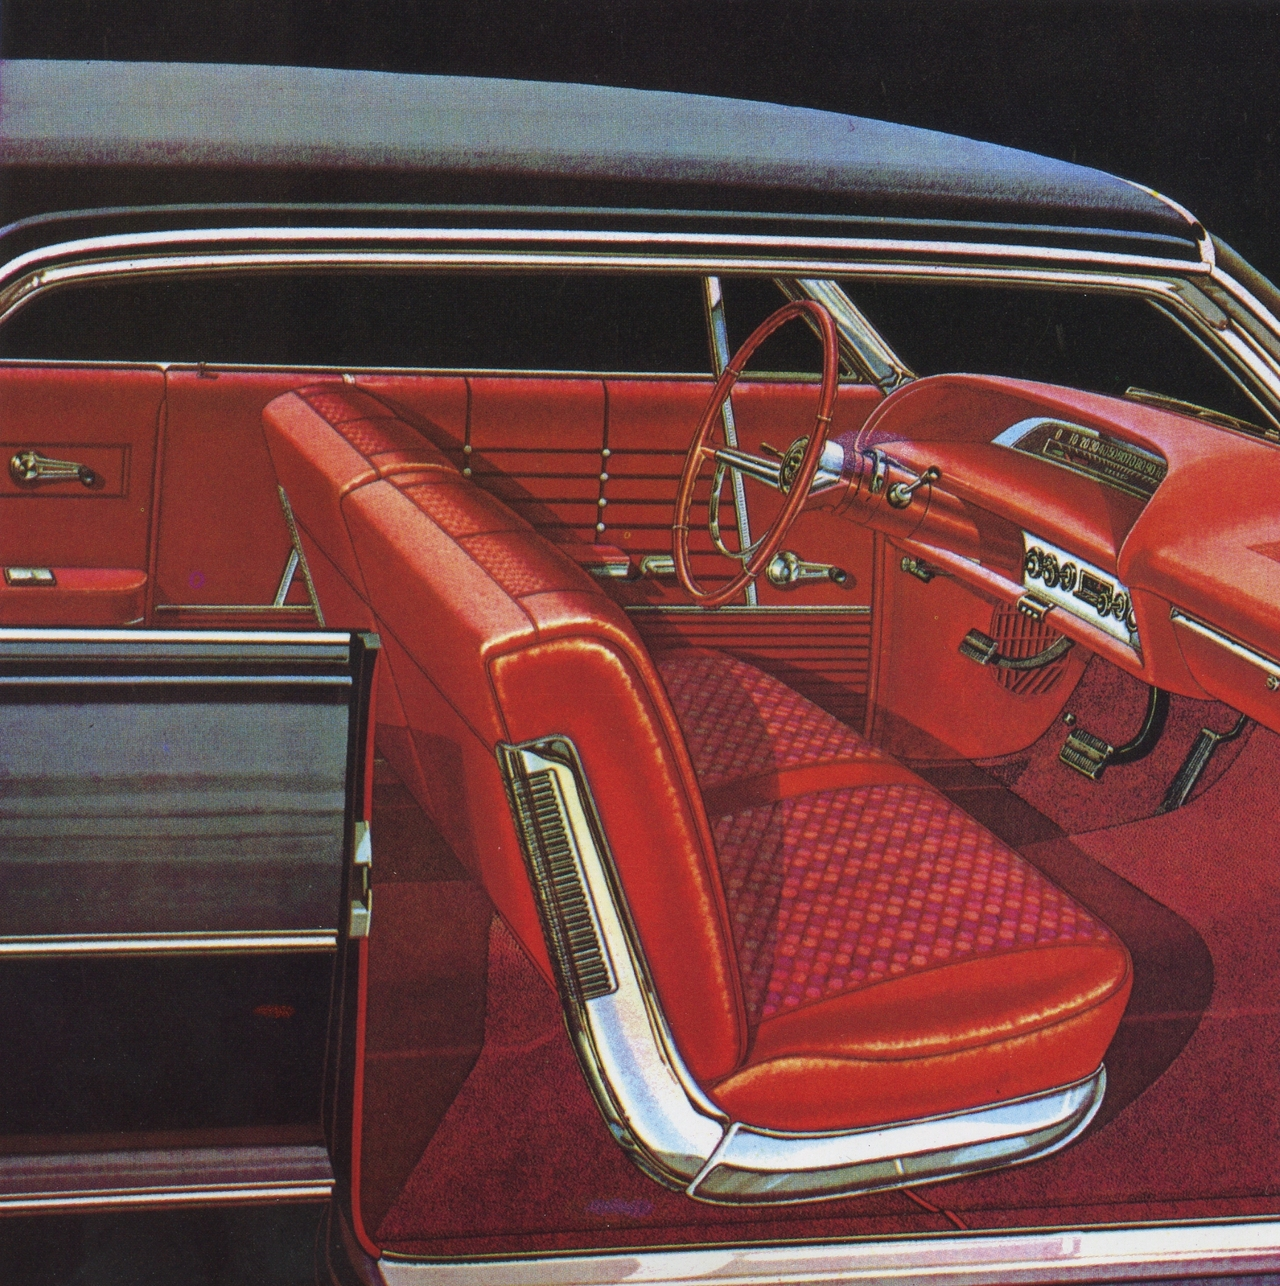 1964 chevrolet impala ss interior photo picture. Black Bedroom Furniture Sets. Home Design Ideas